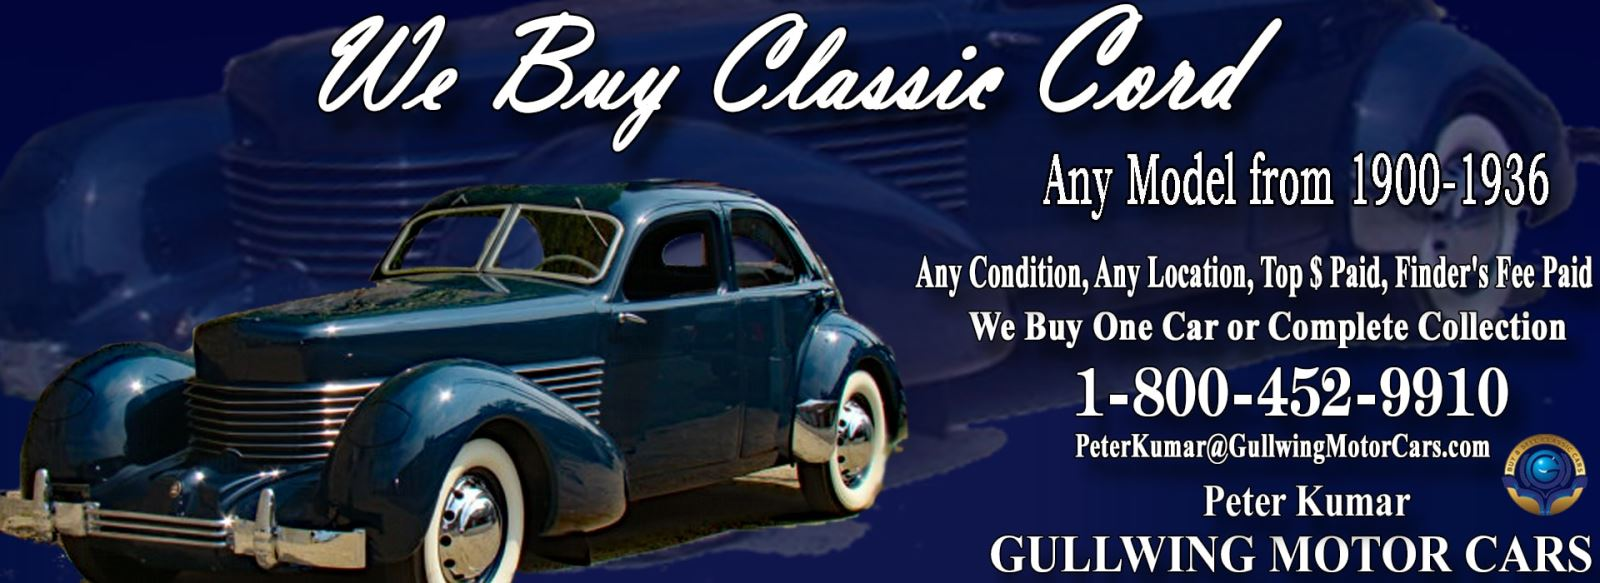 Classic Cord for sale, we buy vintage Cord. Call Peter Kumar. Gullwing Motor